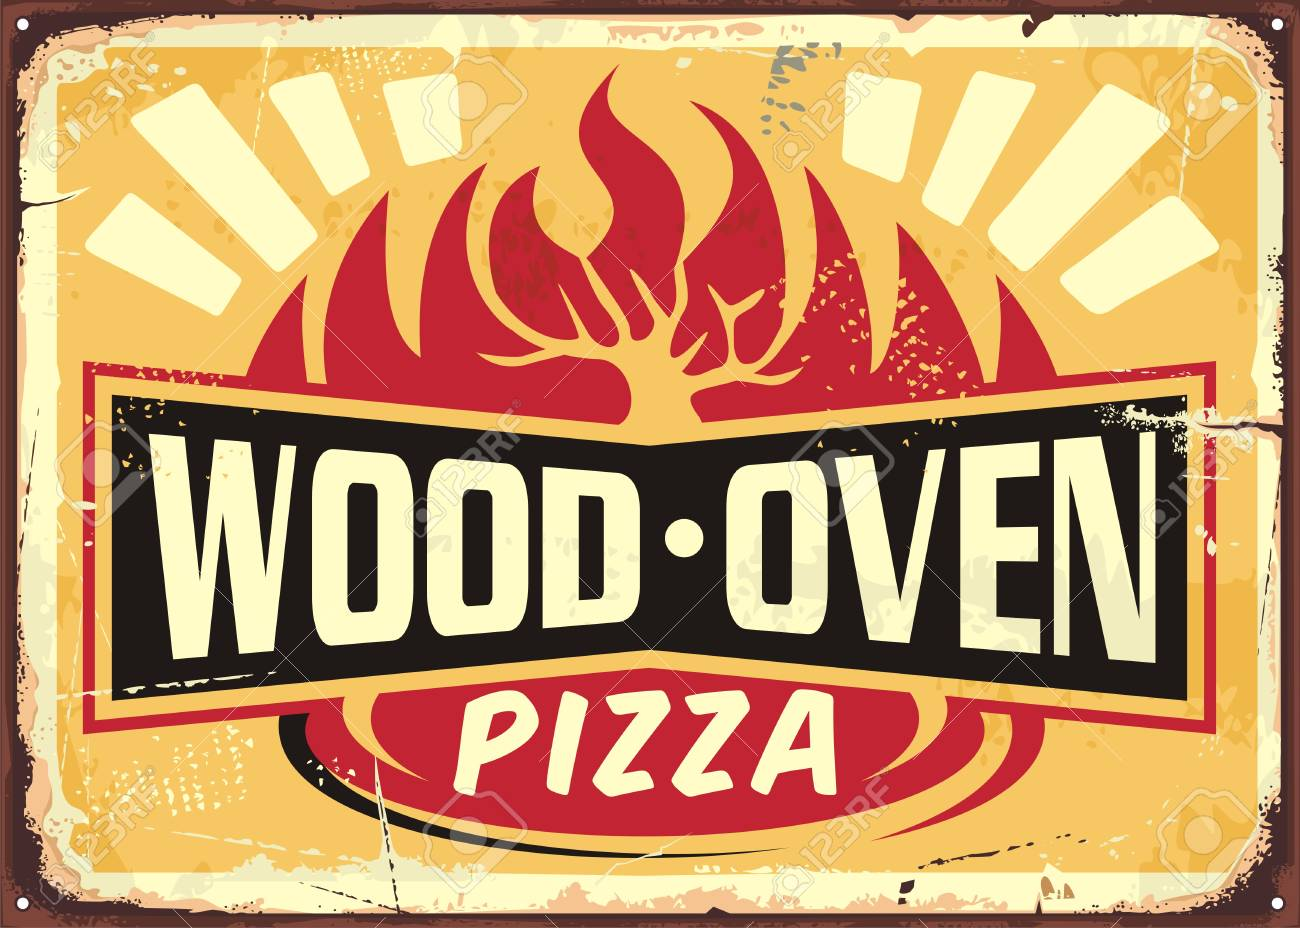 Wood oven fired pizza vintage metal sign design template on yellow background. Italian cuisine retro pizza poster. - 107160047